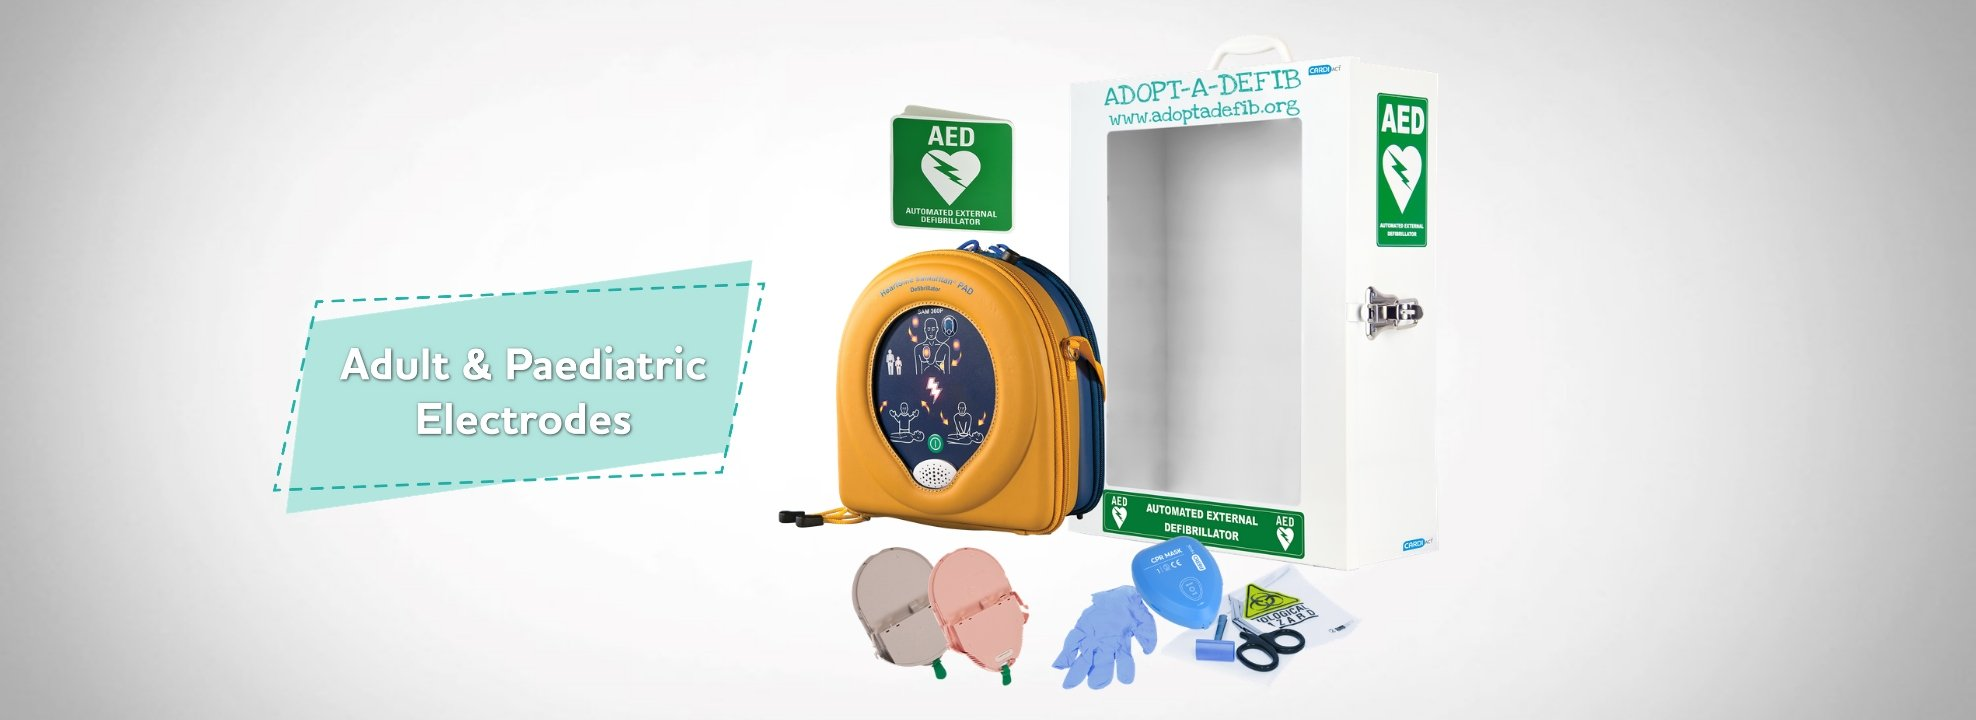 Basic Package_Fully Automatic Defib Package $2,790